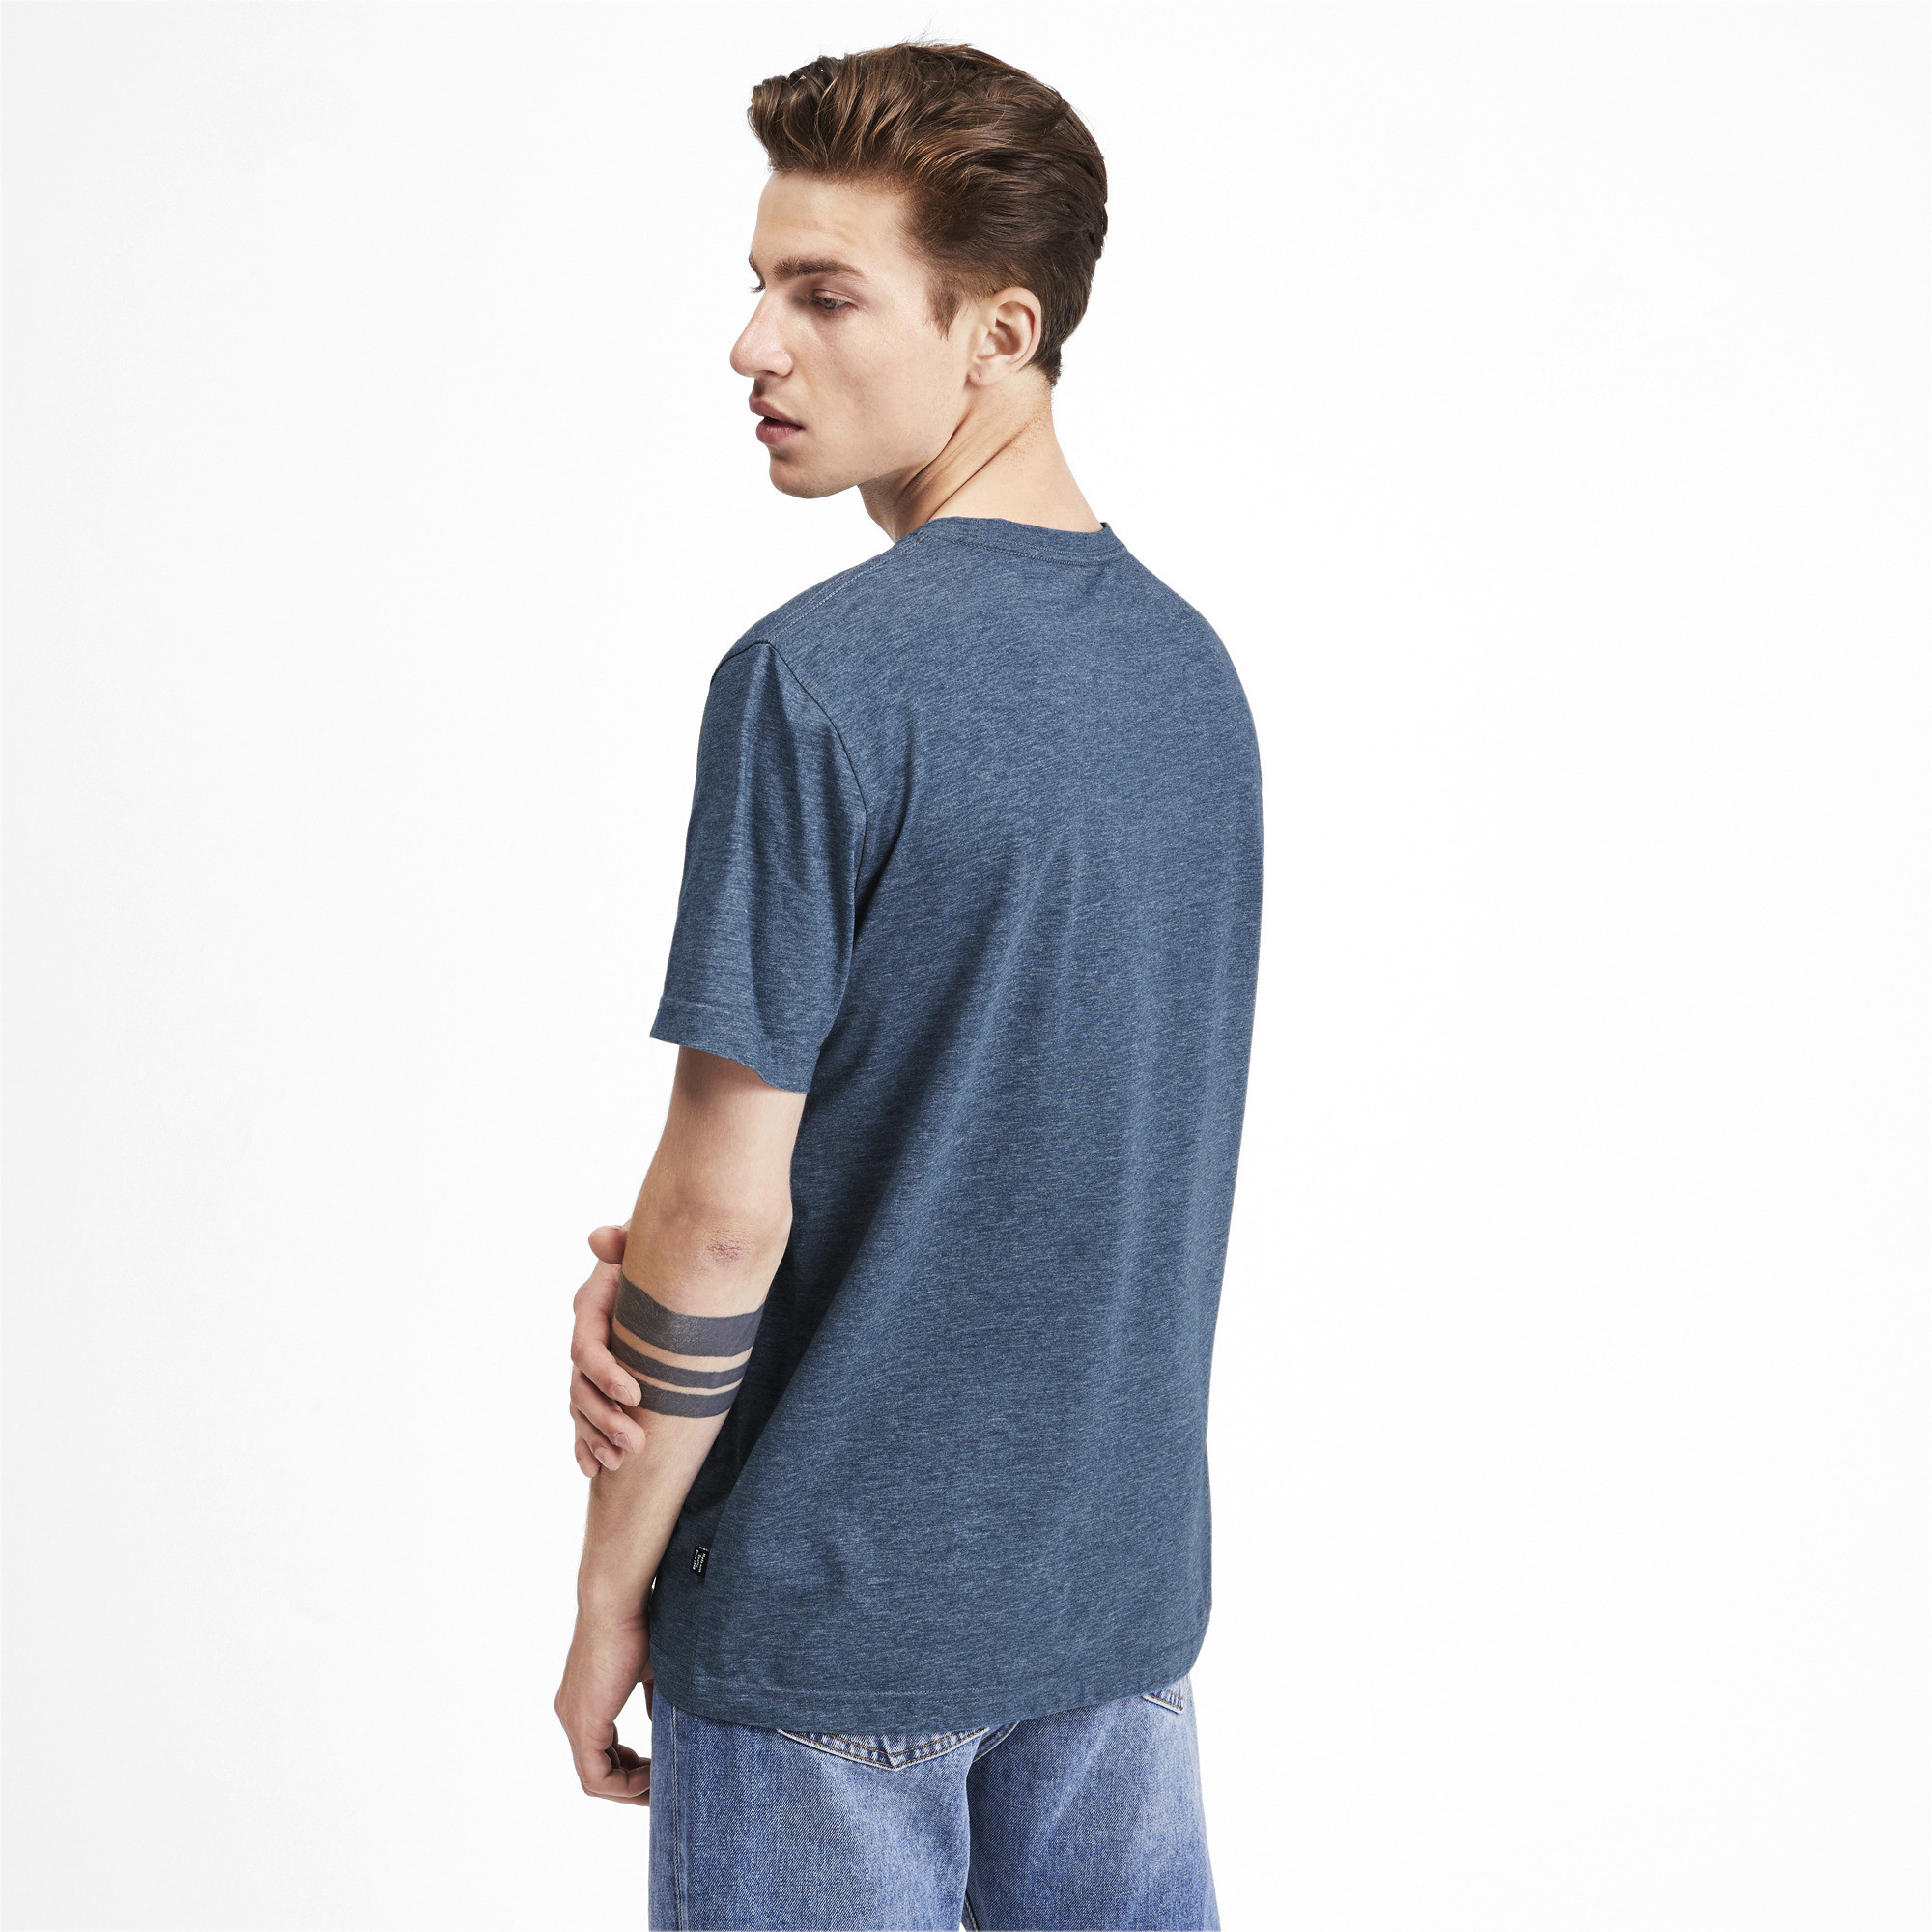 PUMA-Essentials-Heather-Tee-Men-Tee-Basics thumbnail 14